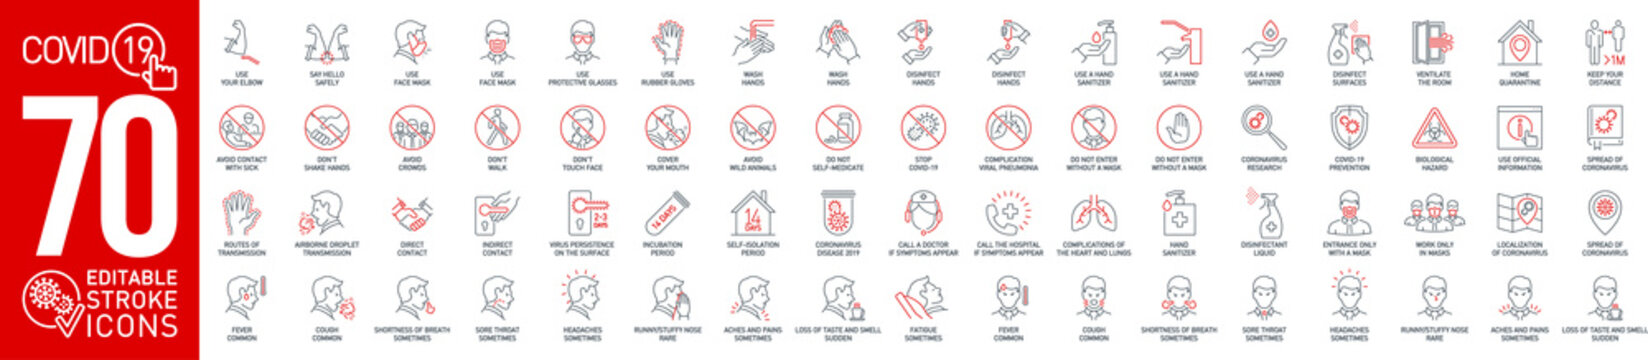 Prevention and symptoms Coronavirus Covid19 line icons set isolated on white. Perfect outline health medicine symbols pandemic banner. Vector design elements covid virus treatment with editable Stroke